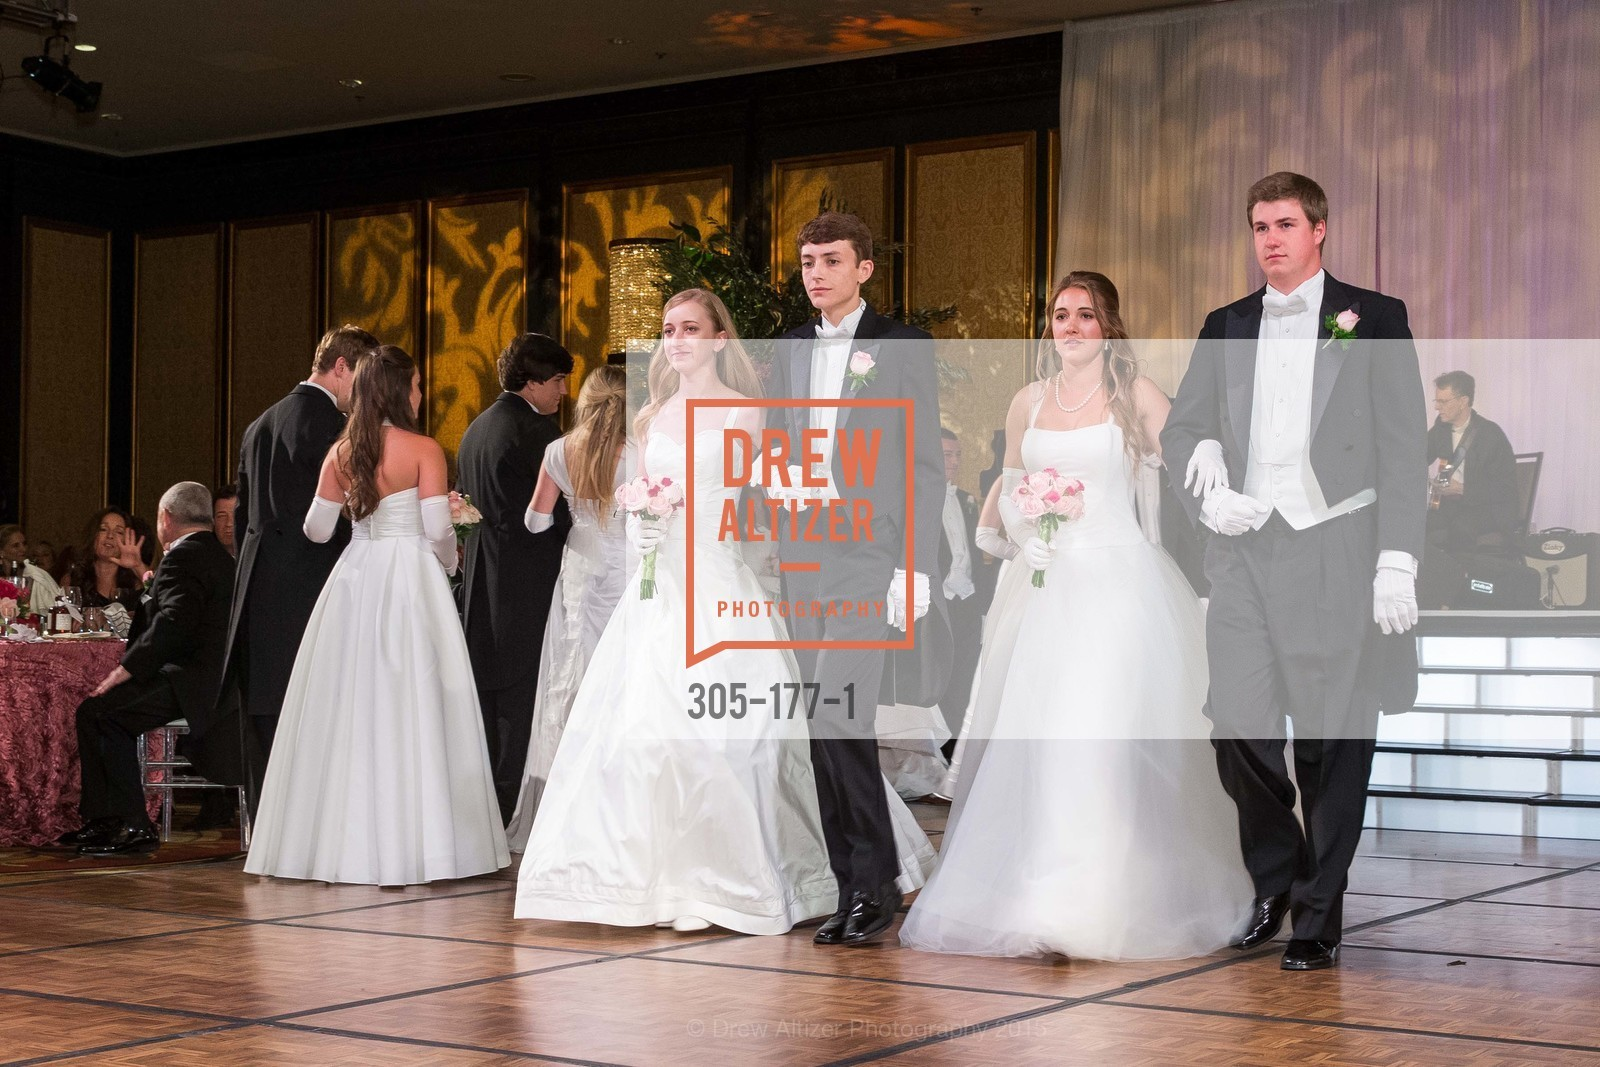 Brook Raabe, Alexander James Douglas, Paloma Palmer, John Bernanrd Travers, The 2015 San Francisco Debutante Ball, The Westin St. Francis San Francisco Union Square. 335 Powell St, June 20th, 2015,Drew Altizer, Drew Altizer Photography, full-service agency, private events, San Francisco photographer, photographer california